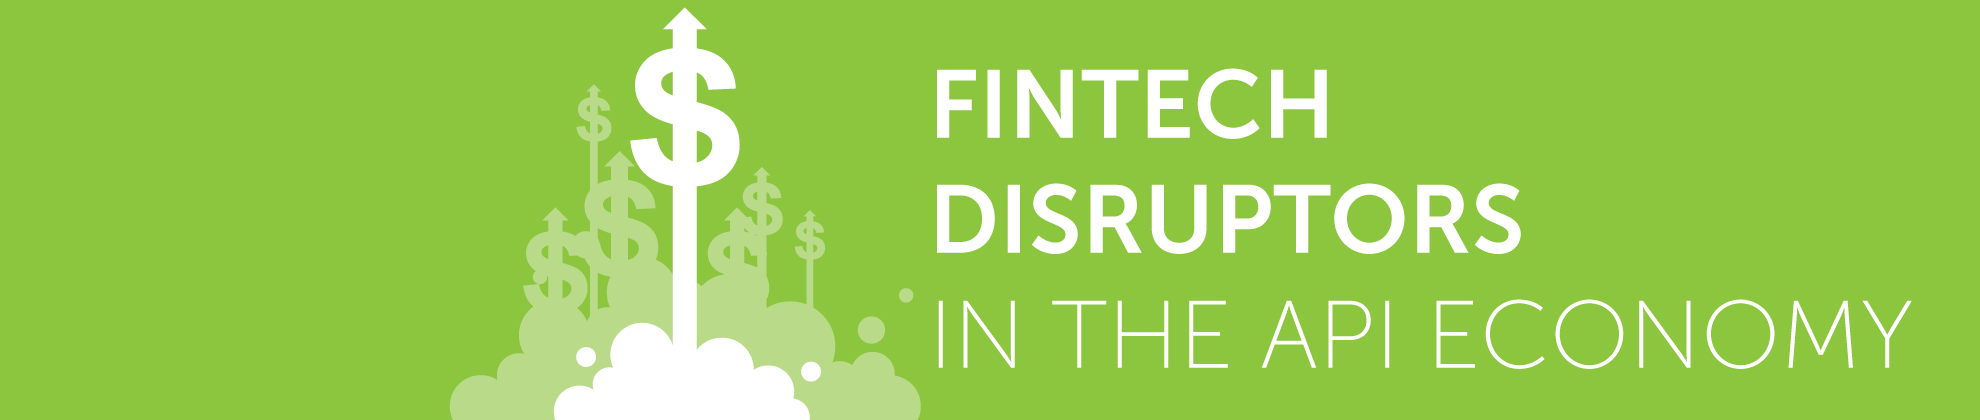 fintech-disruption-blog.png